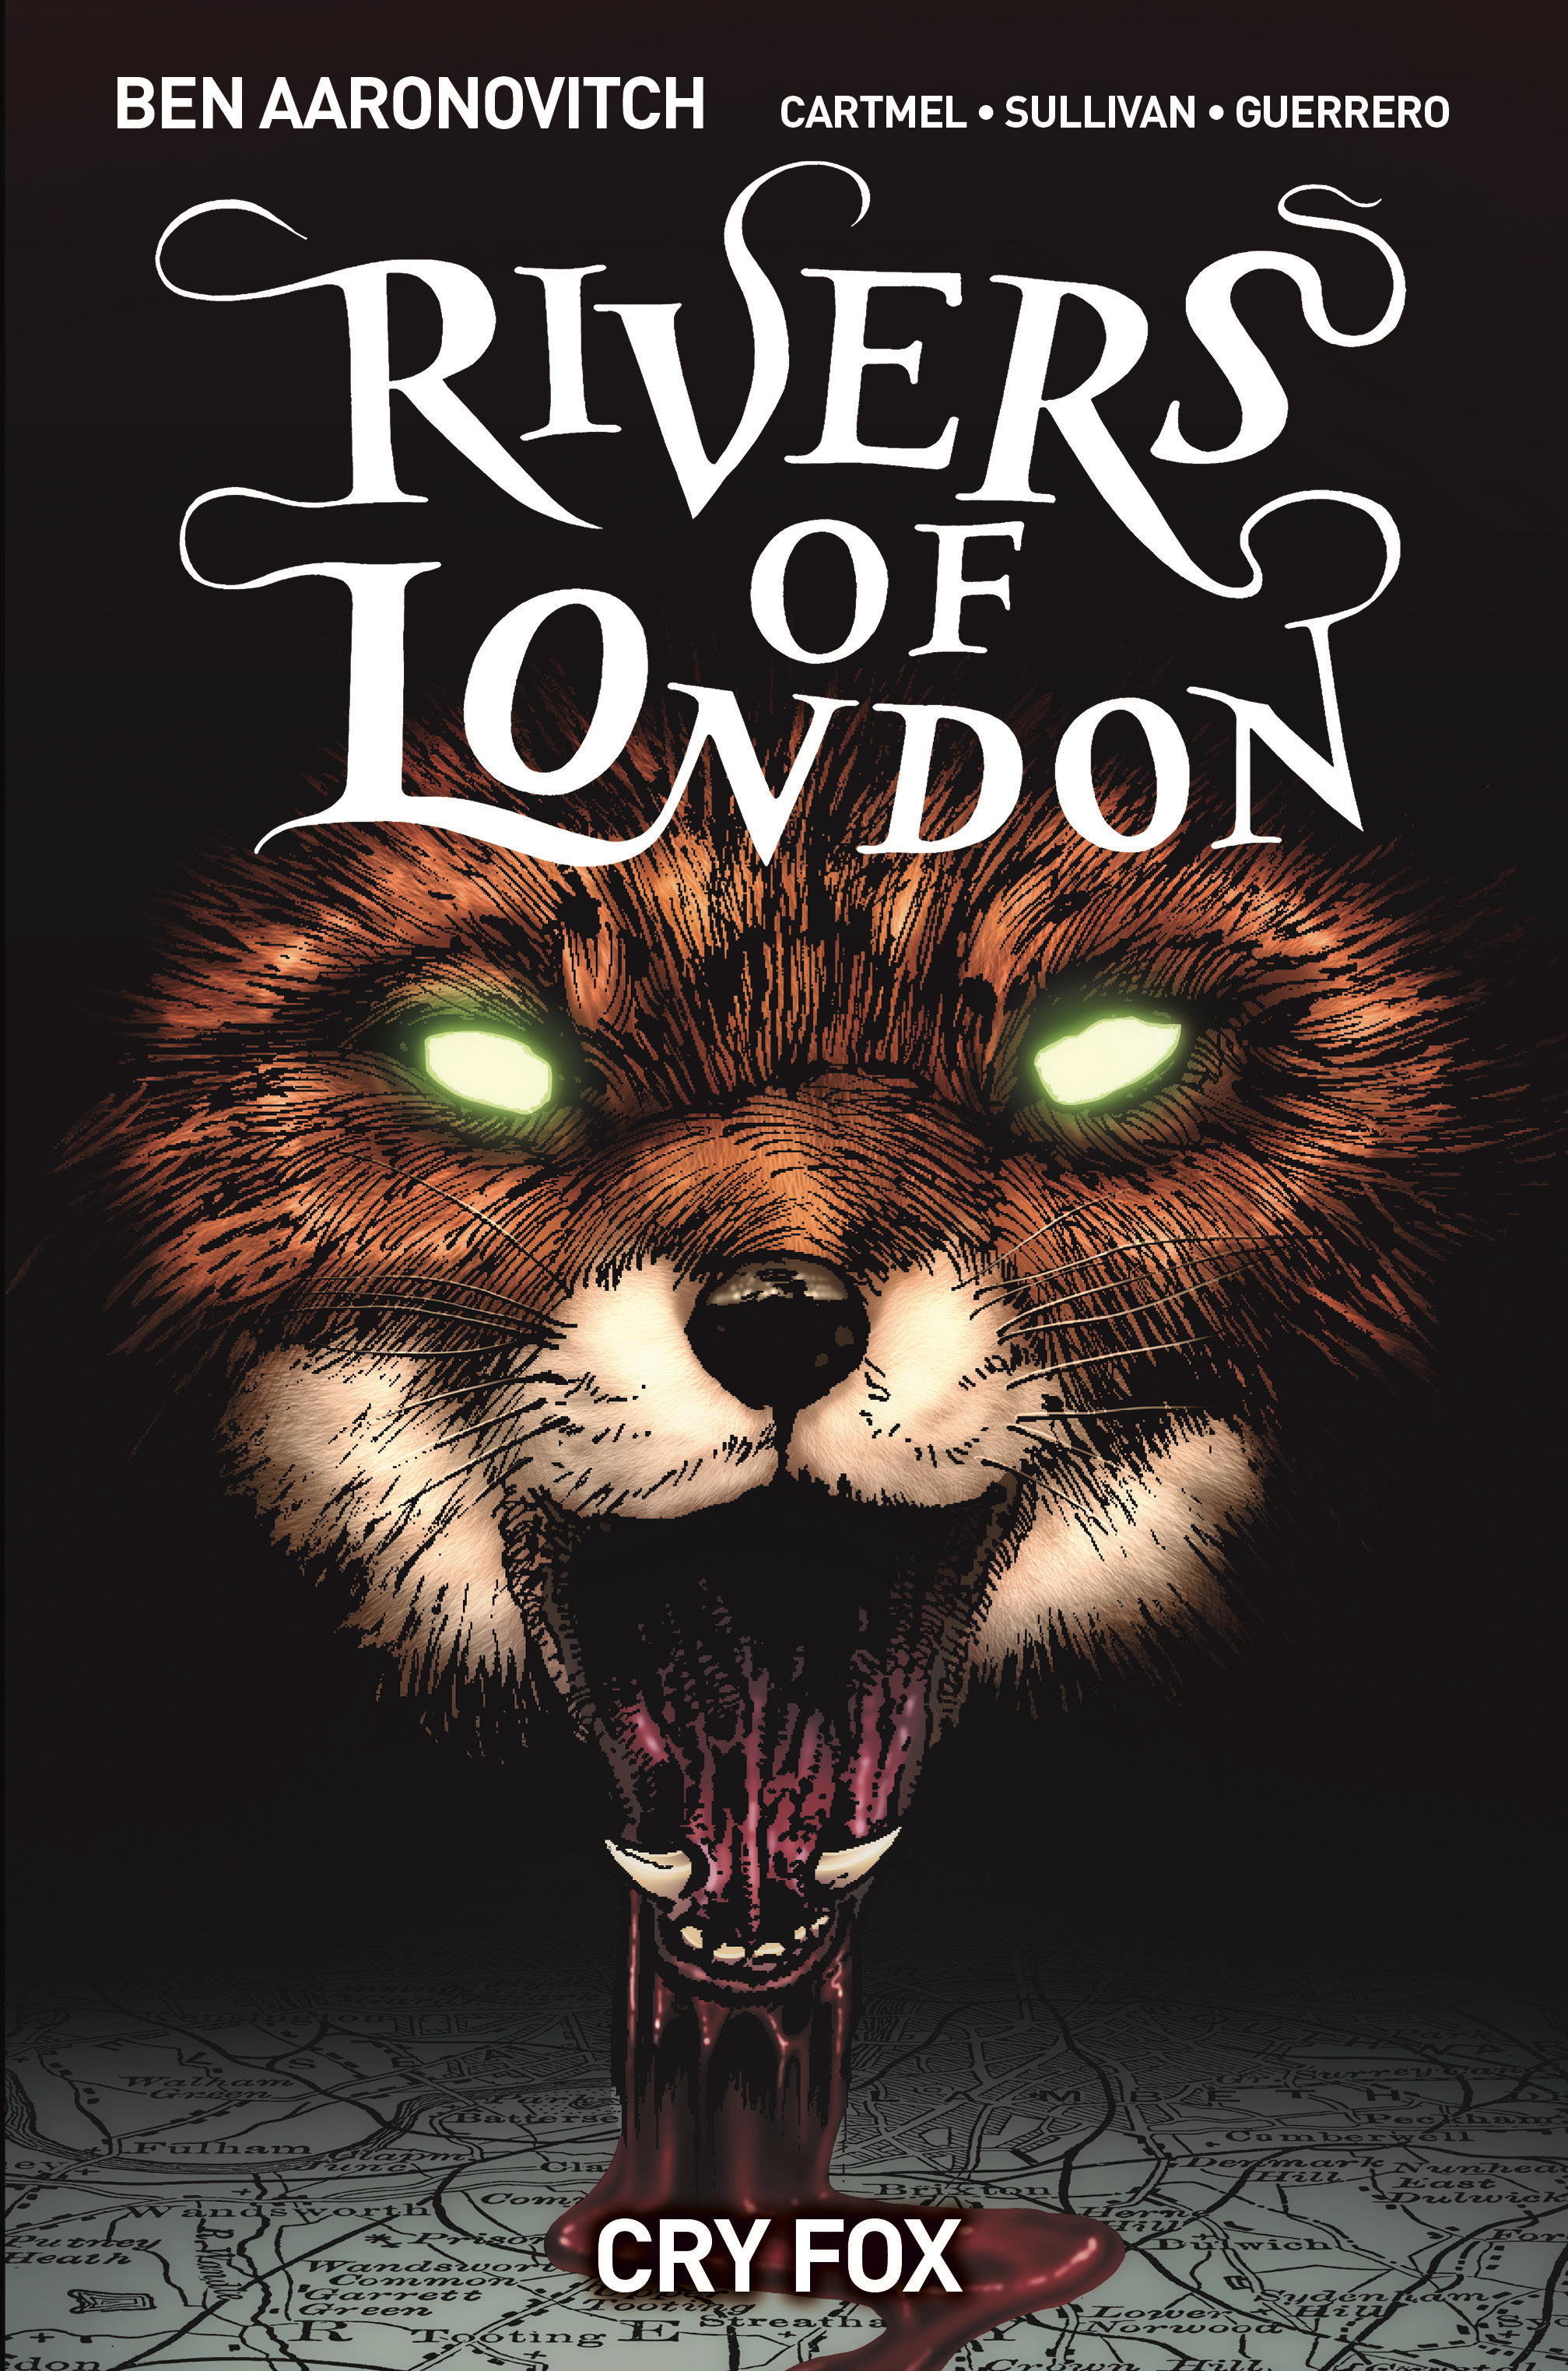 RIVERS OF LONDON TP VOL 05 CRY FOX (O/A) (MR)